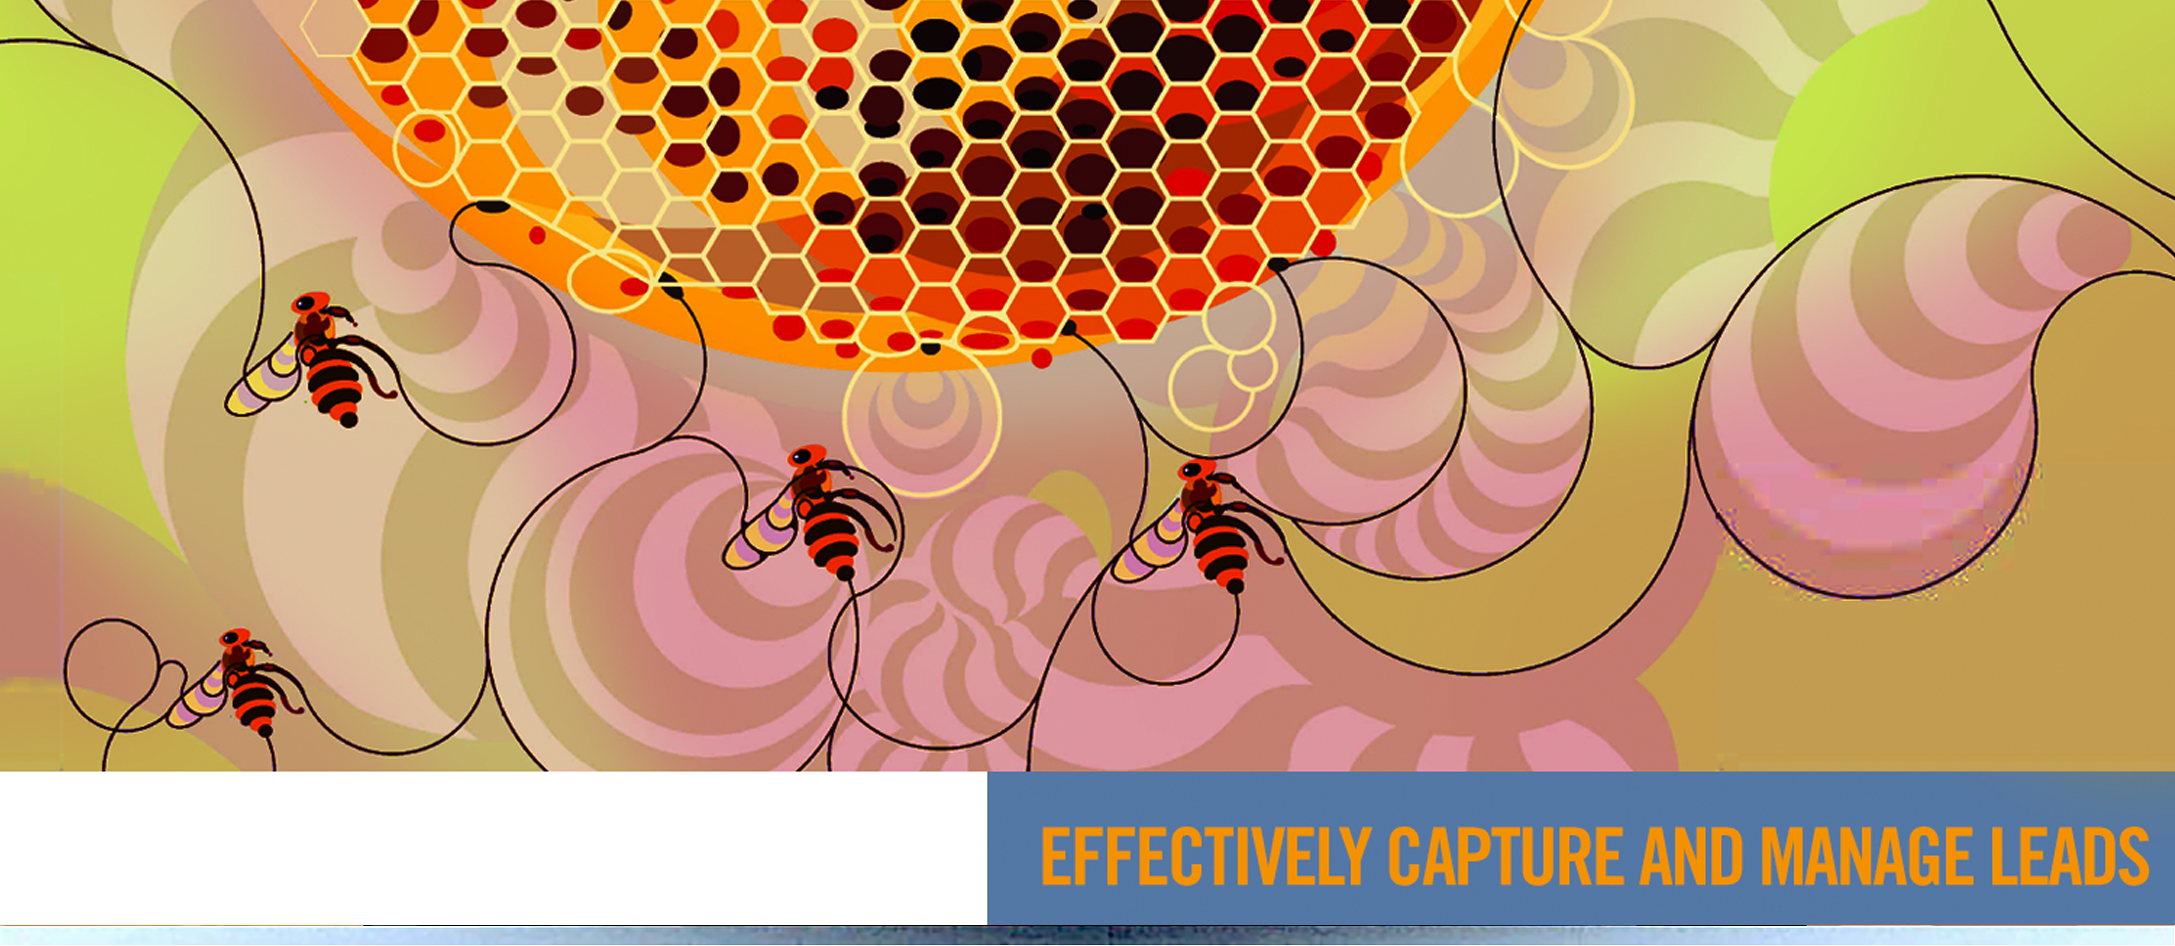 EFFECTIVELY CAPTURE AND MANAGE LEADS